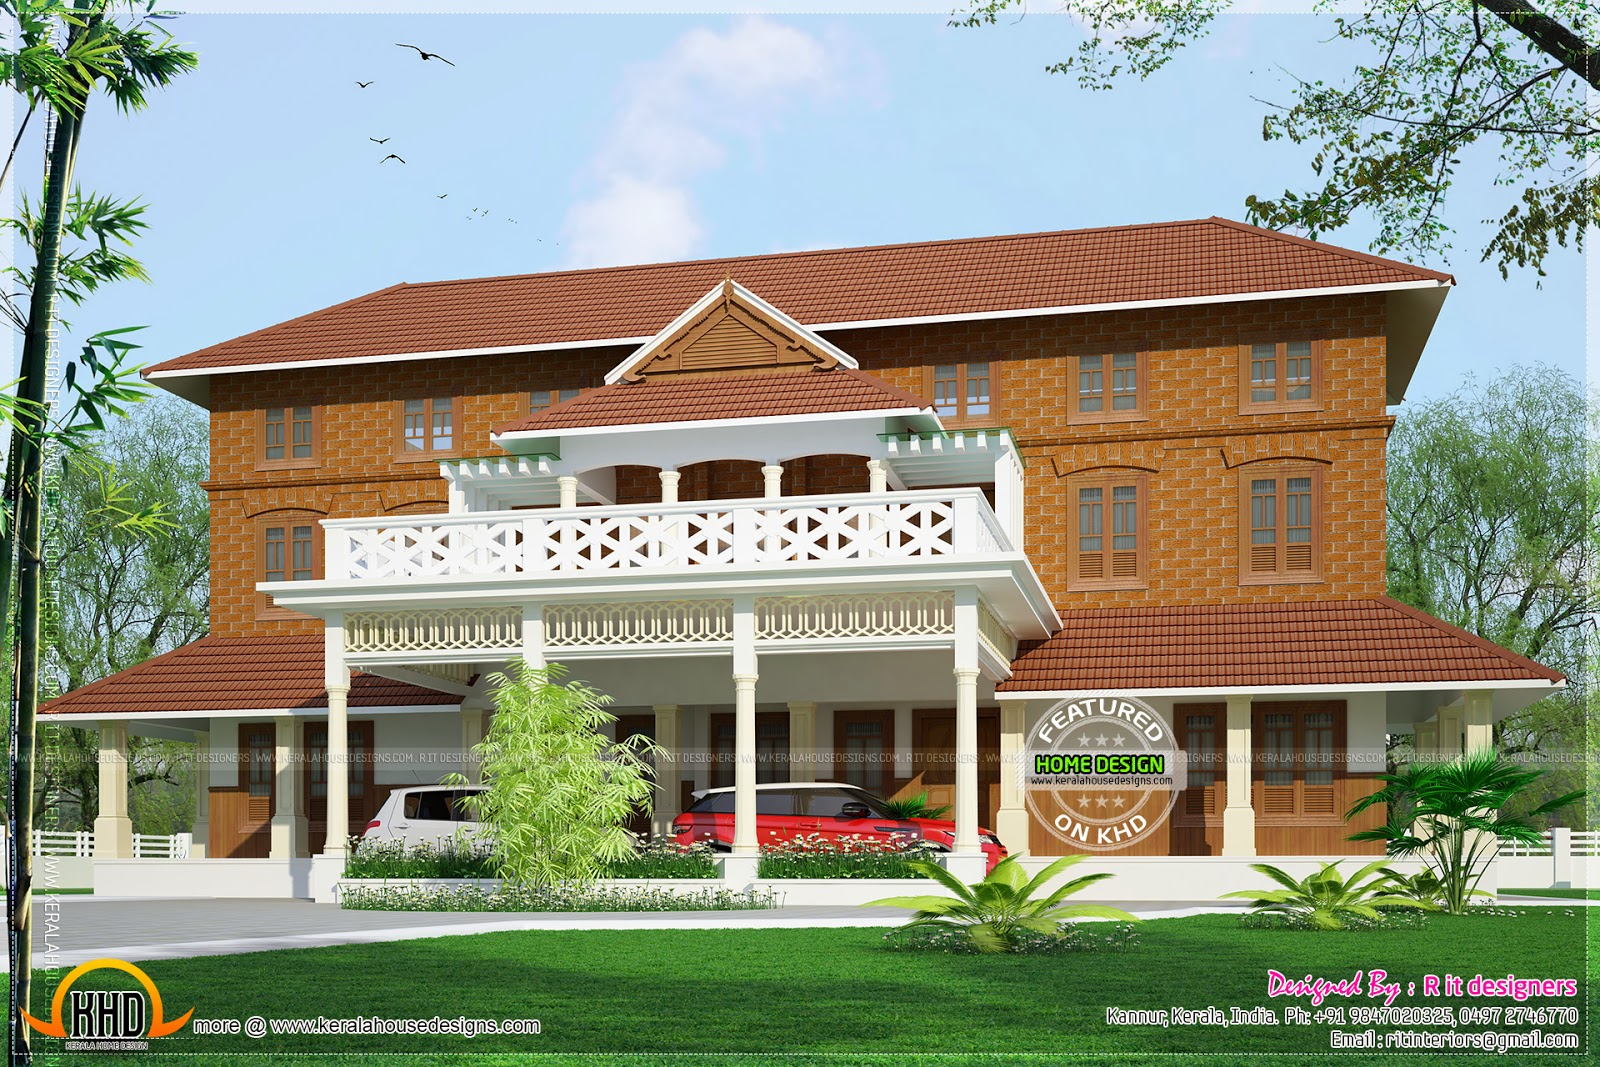 Beautiful Kerala Traditional House Plans Below 2000 Sq Ft - House Plans throughout Kerala Traditional House Plans With Photos